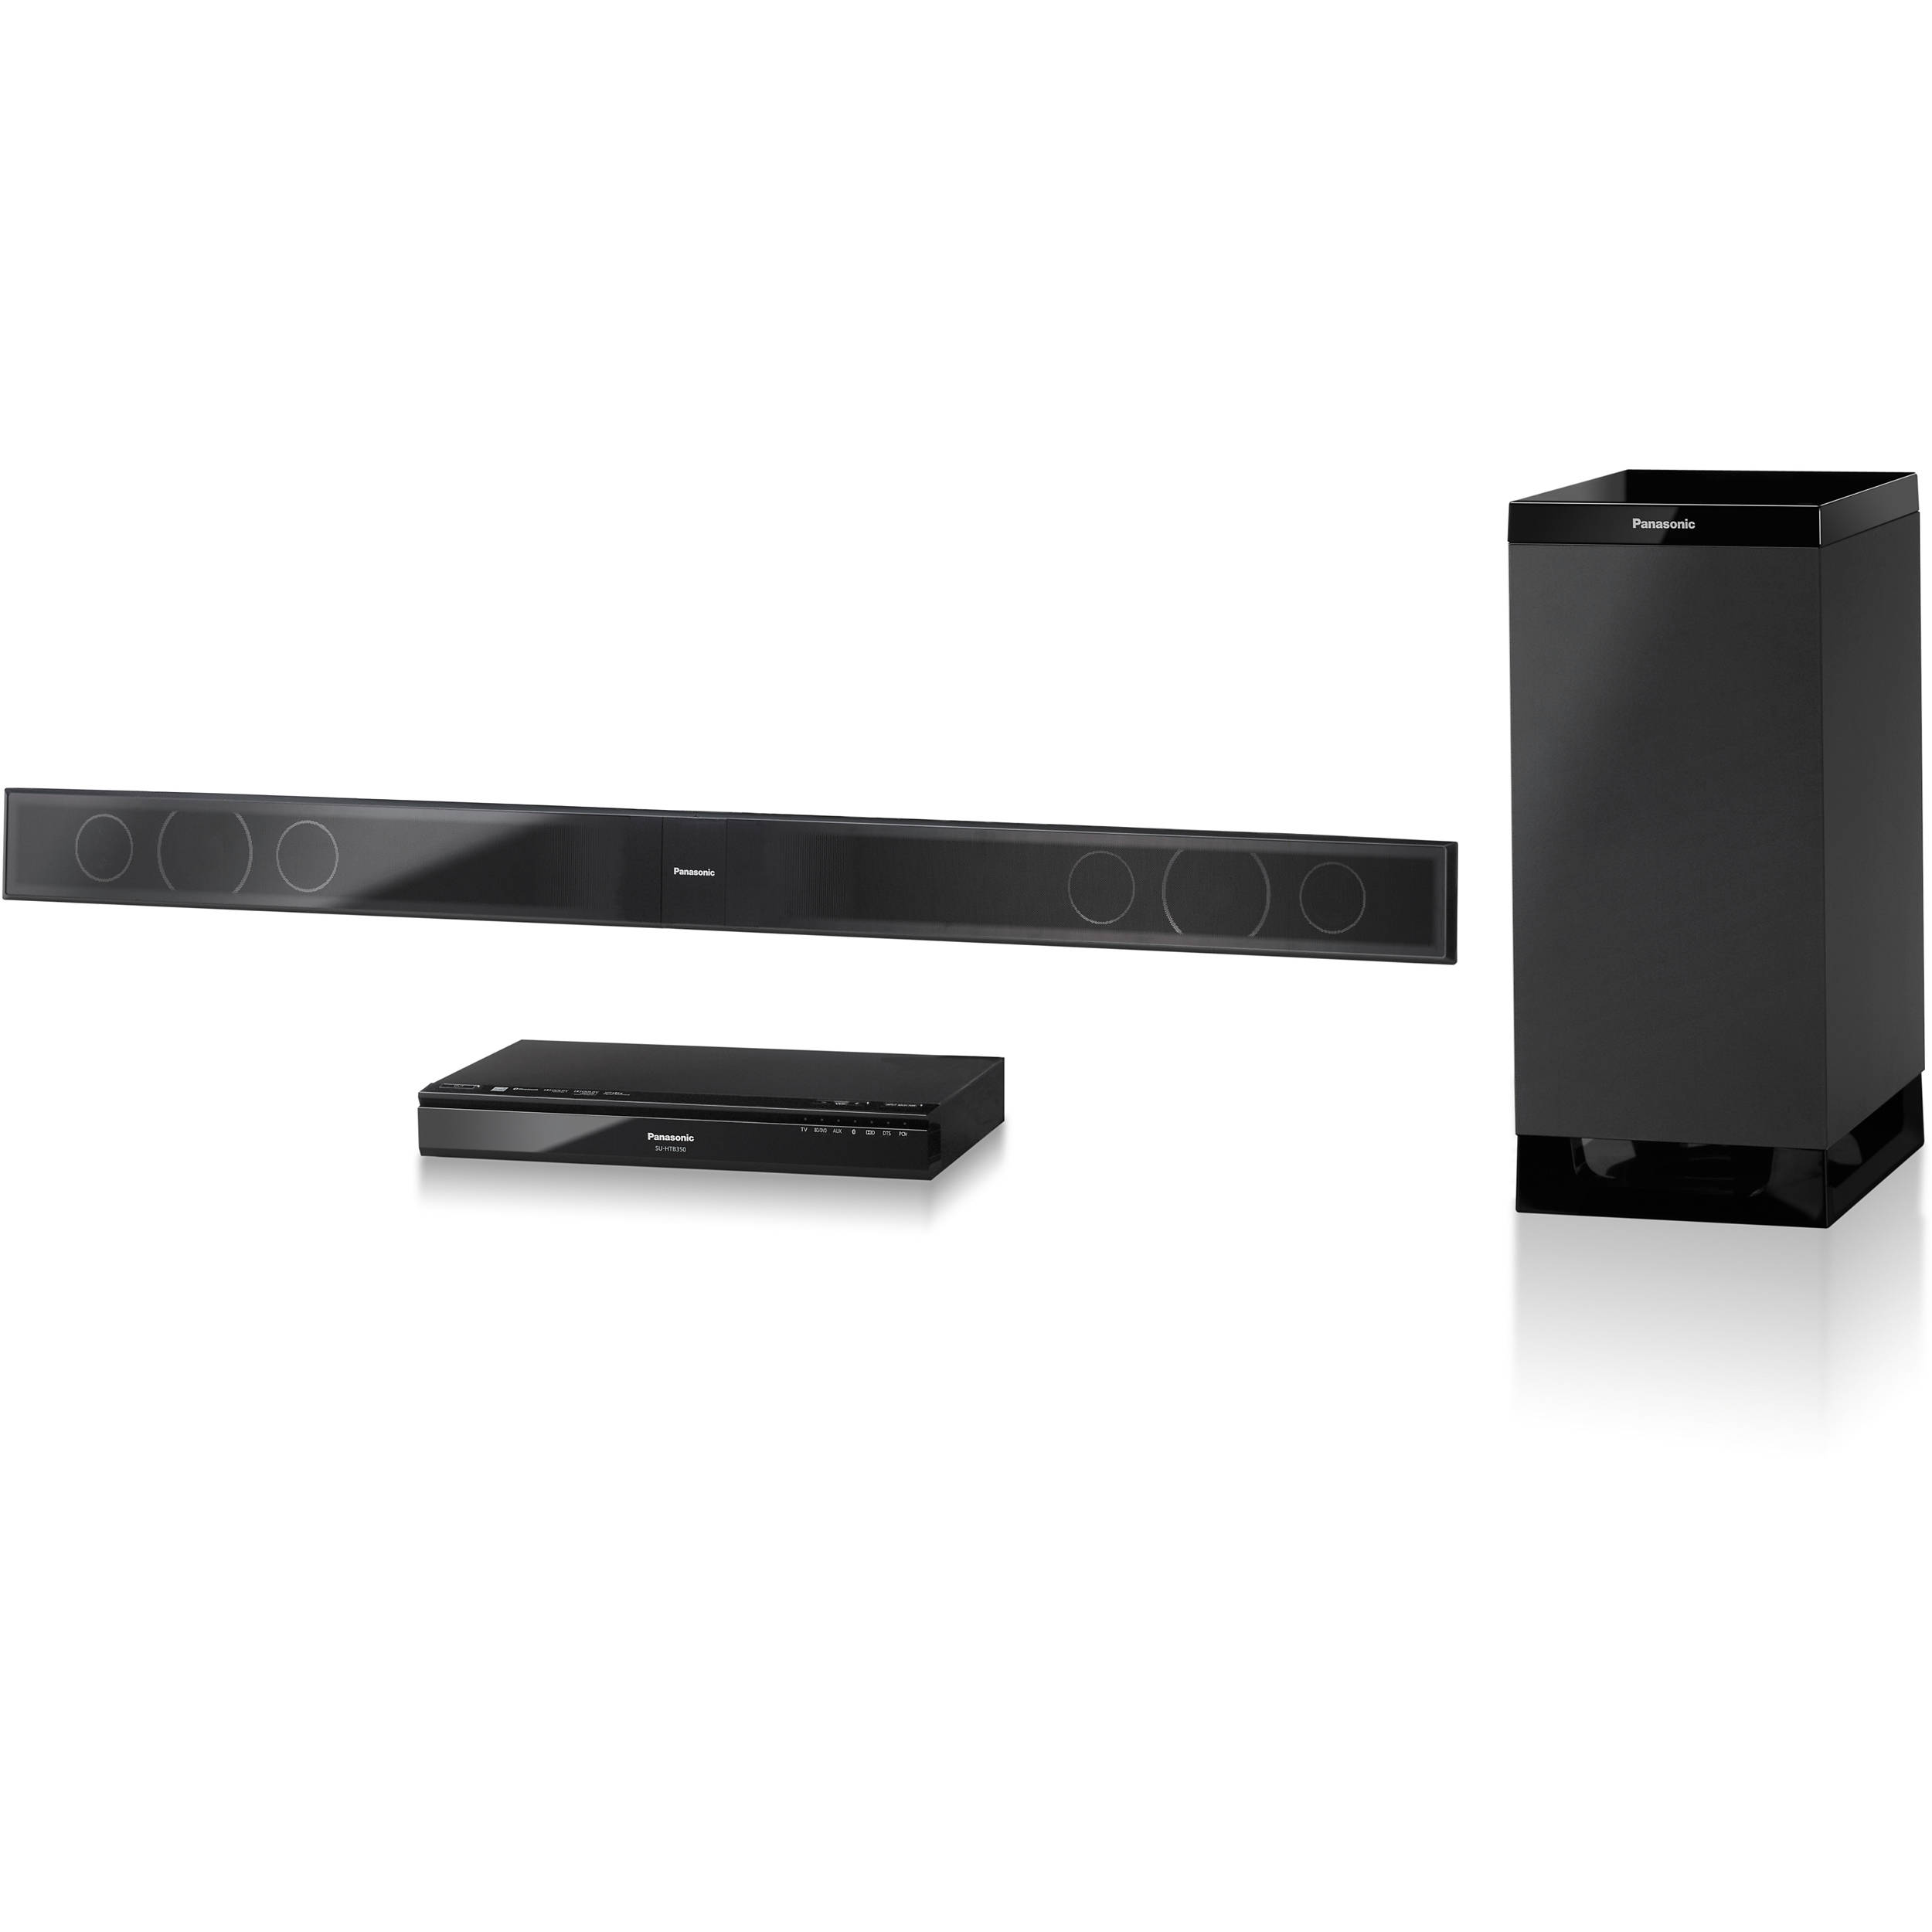 Panasonic Sc Htb350 Home Theater System Sound Bar With Subwoofer